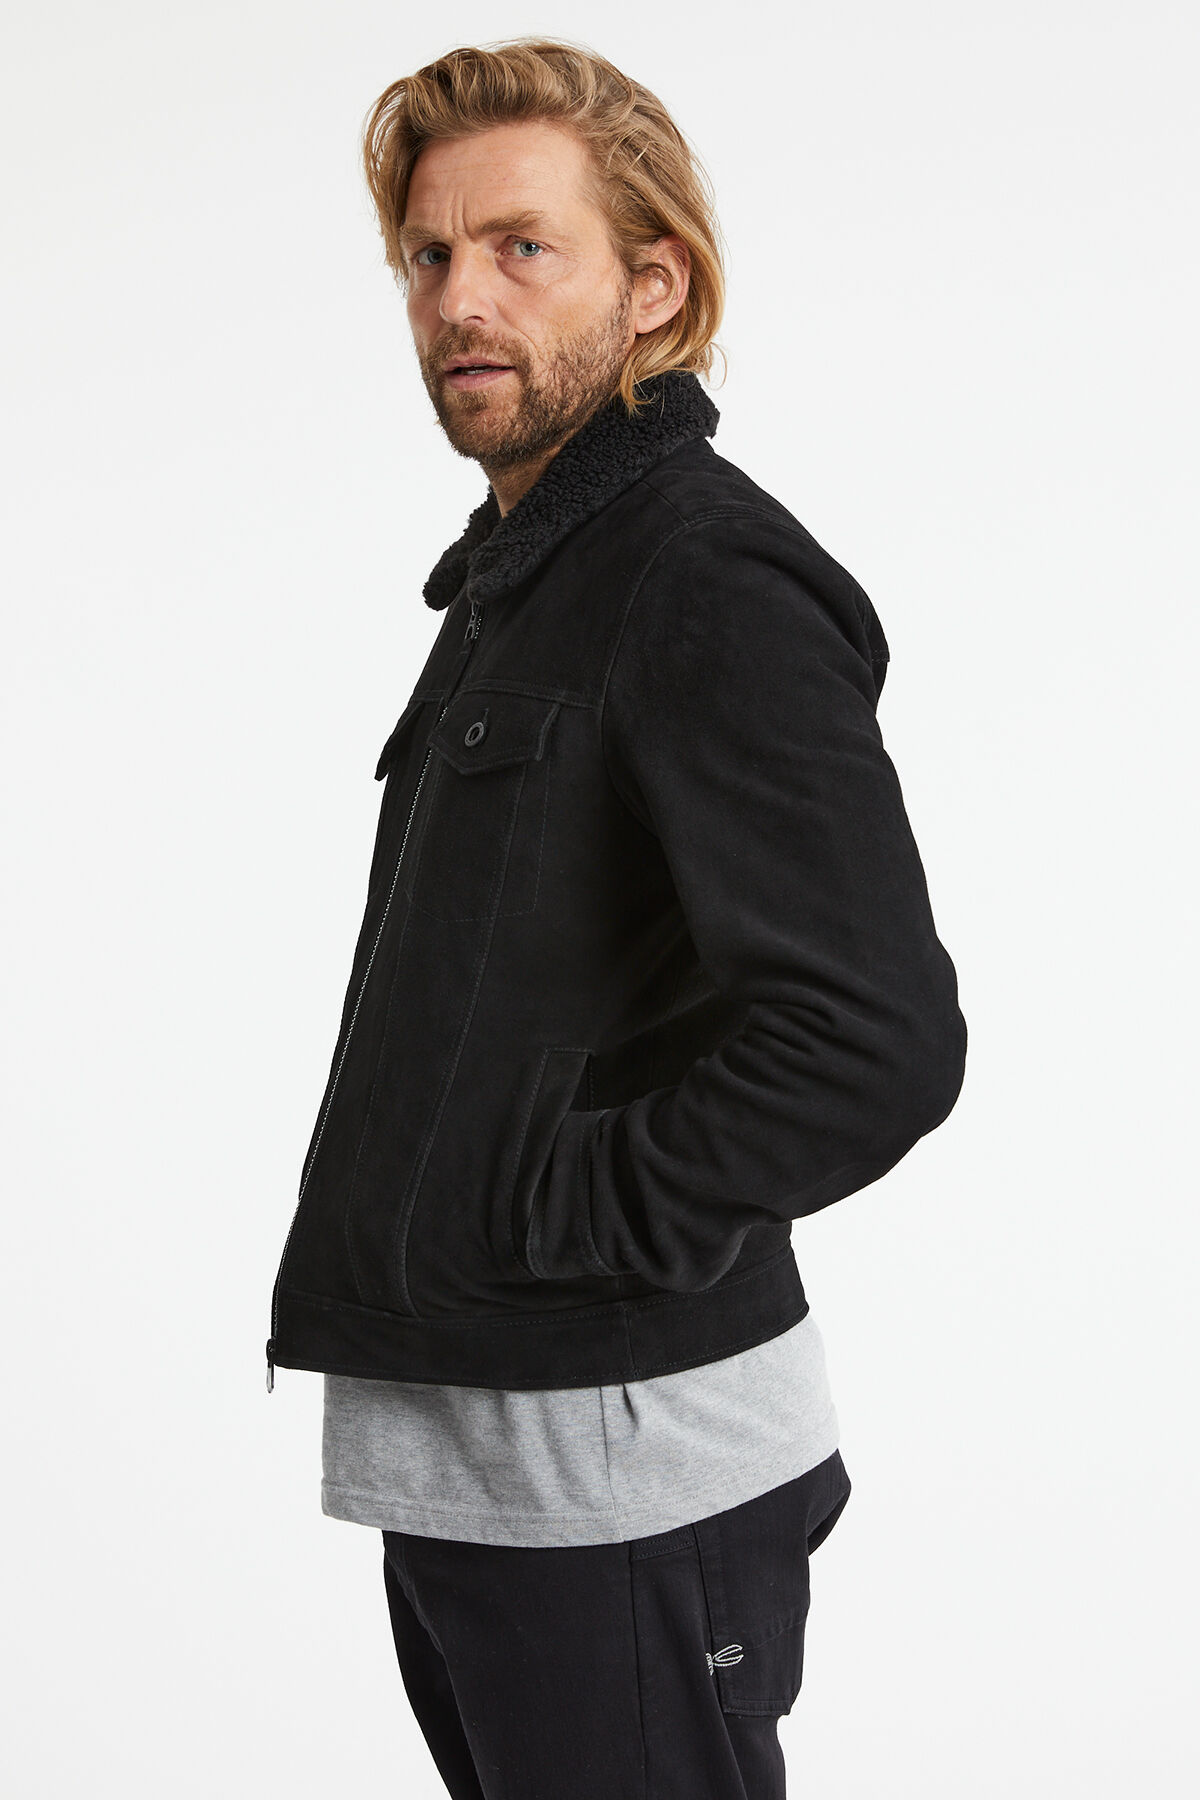 ARLINE LEATHER JACKET Suede Trucker - Slim Fit